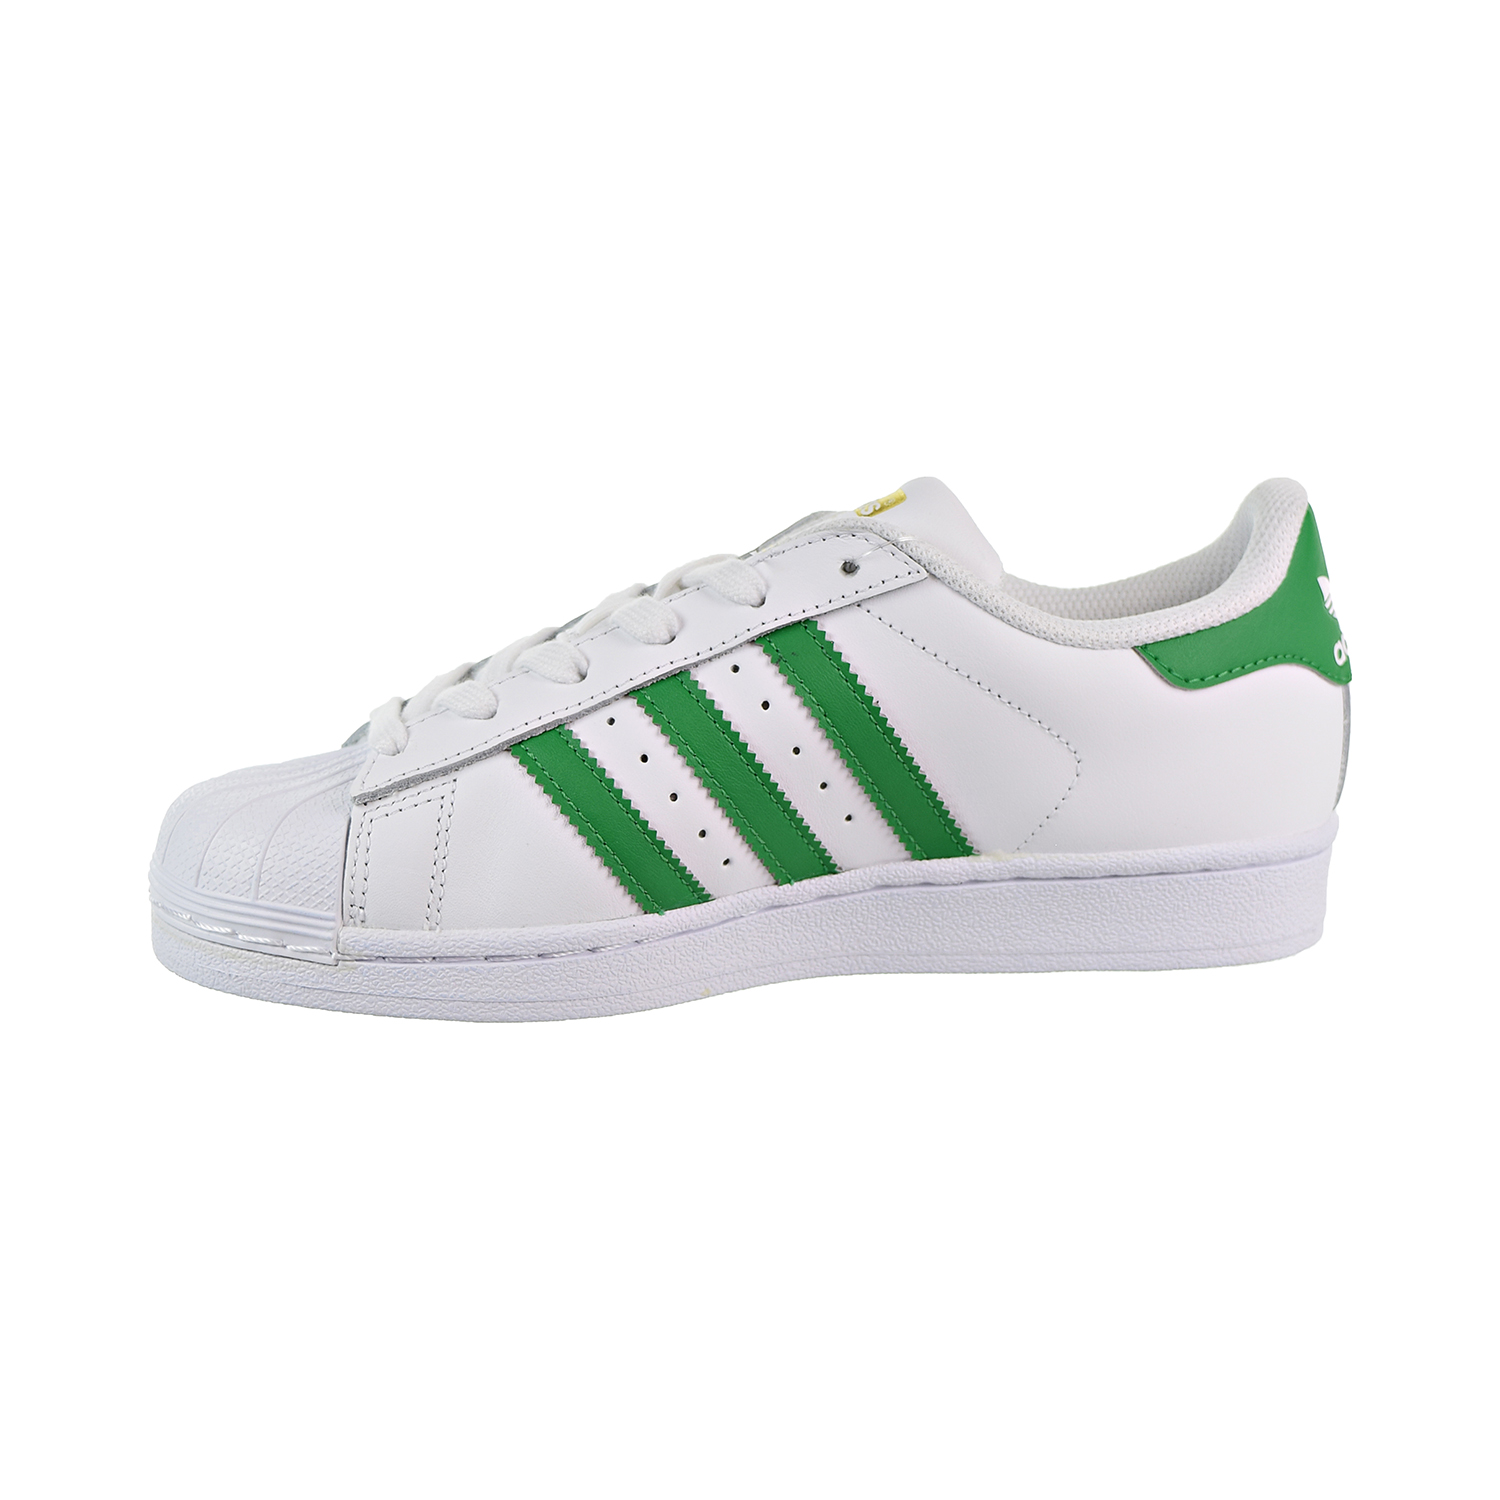 pretty nice 827ce 64207 Adidas Superstar Big Kids  Shoes Cloud White Green Gold Metallic s81017